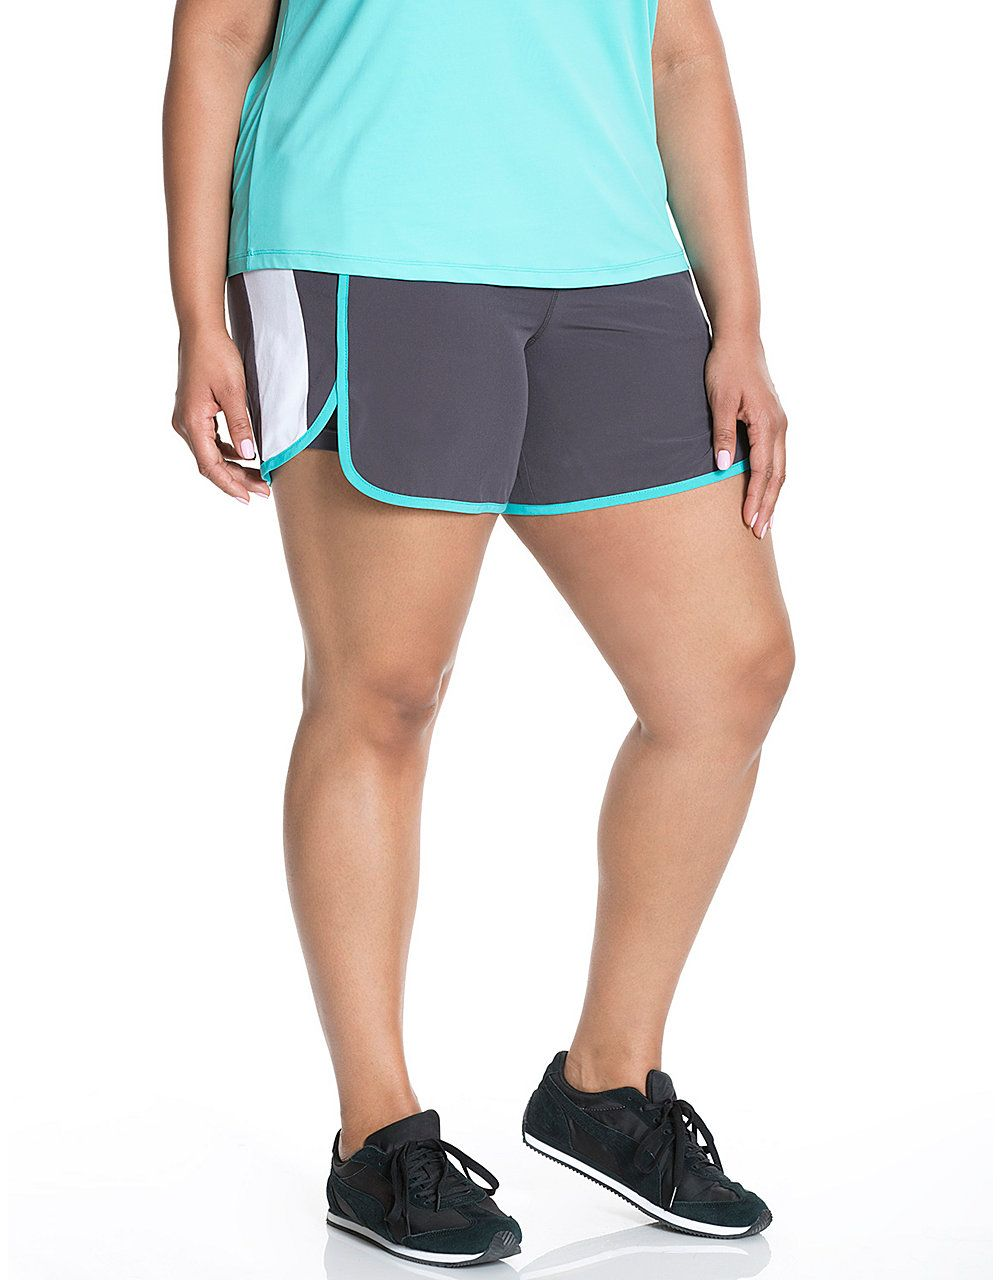 48b56f8bf994e9 Cooling active short by Livi Active | Lane Bryant | Activewear ...